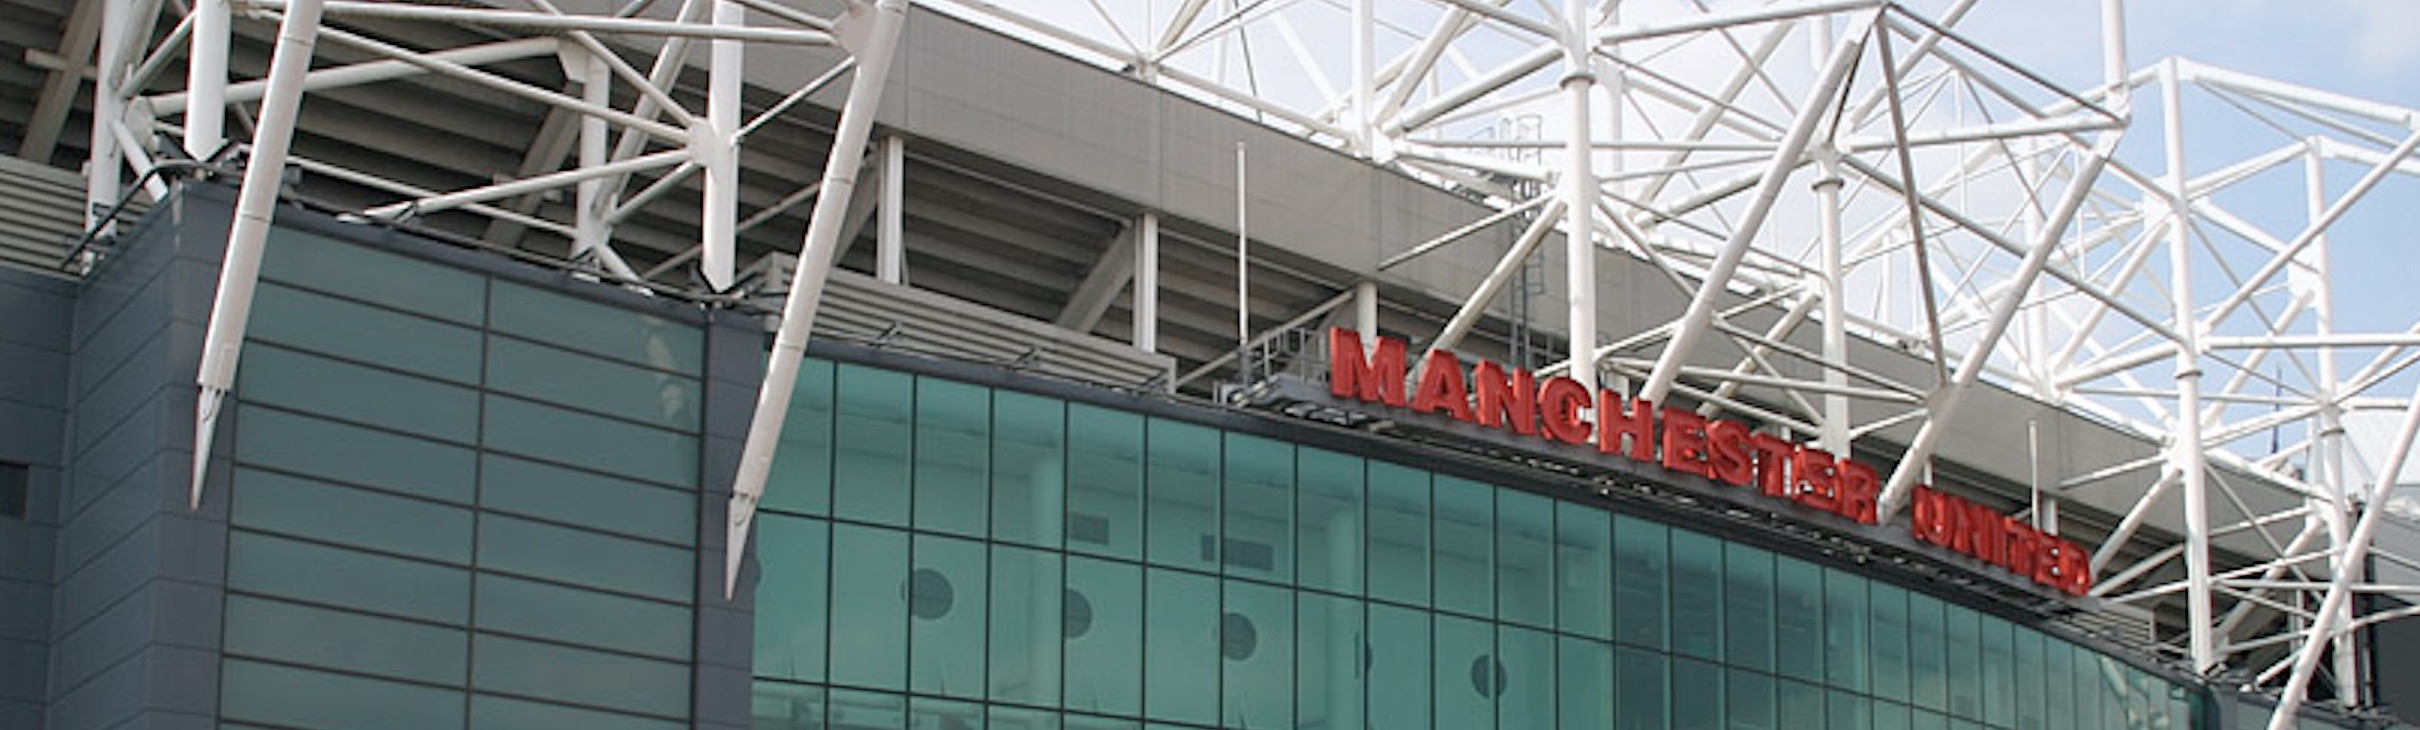 Man United V Burnley - Daytrip by Coach & Ferry